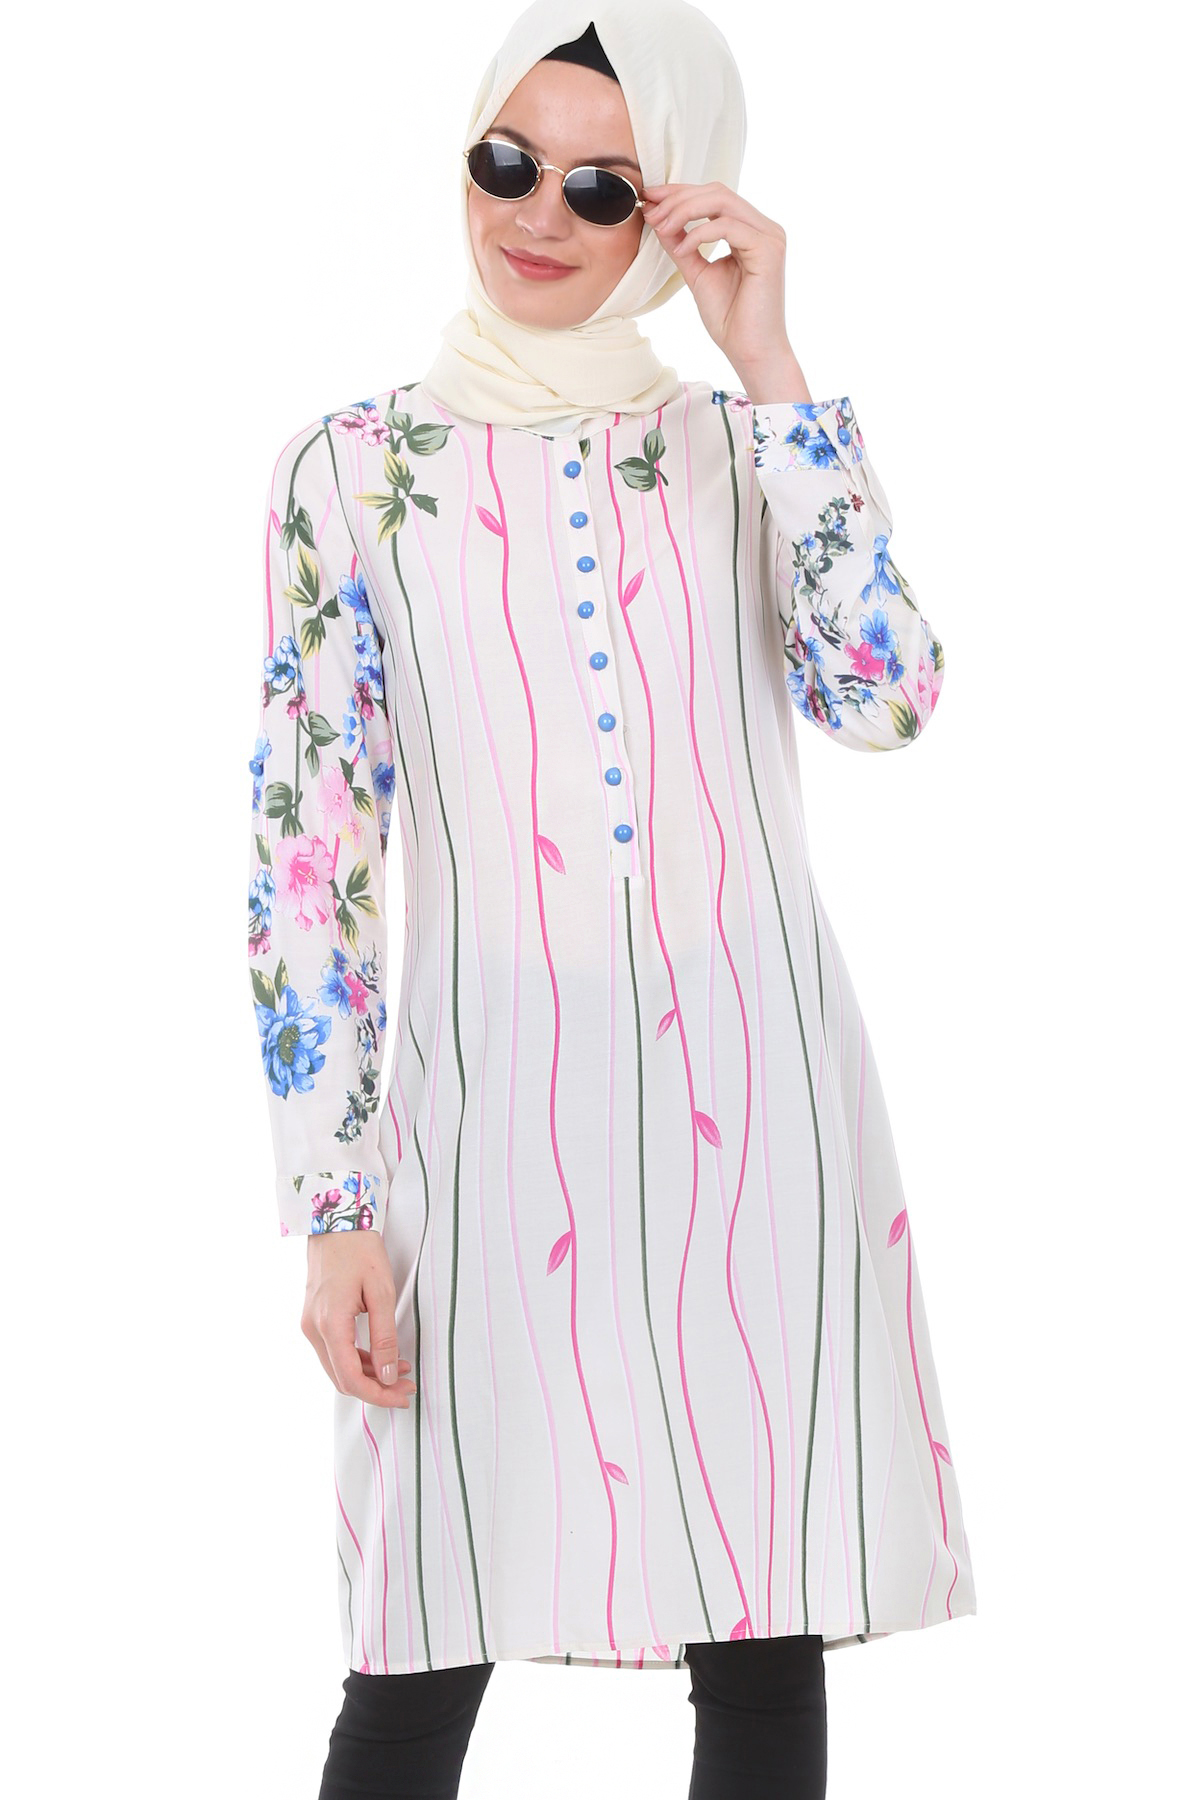 Women's Crew Neck Button Top Patterned Tunic